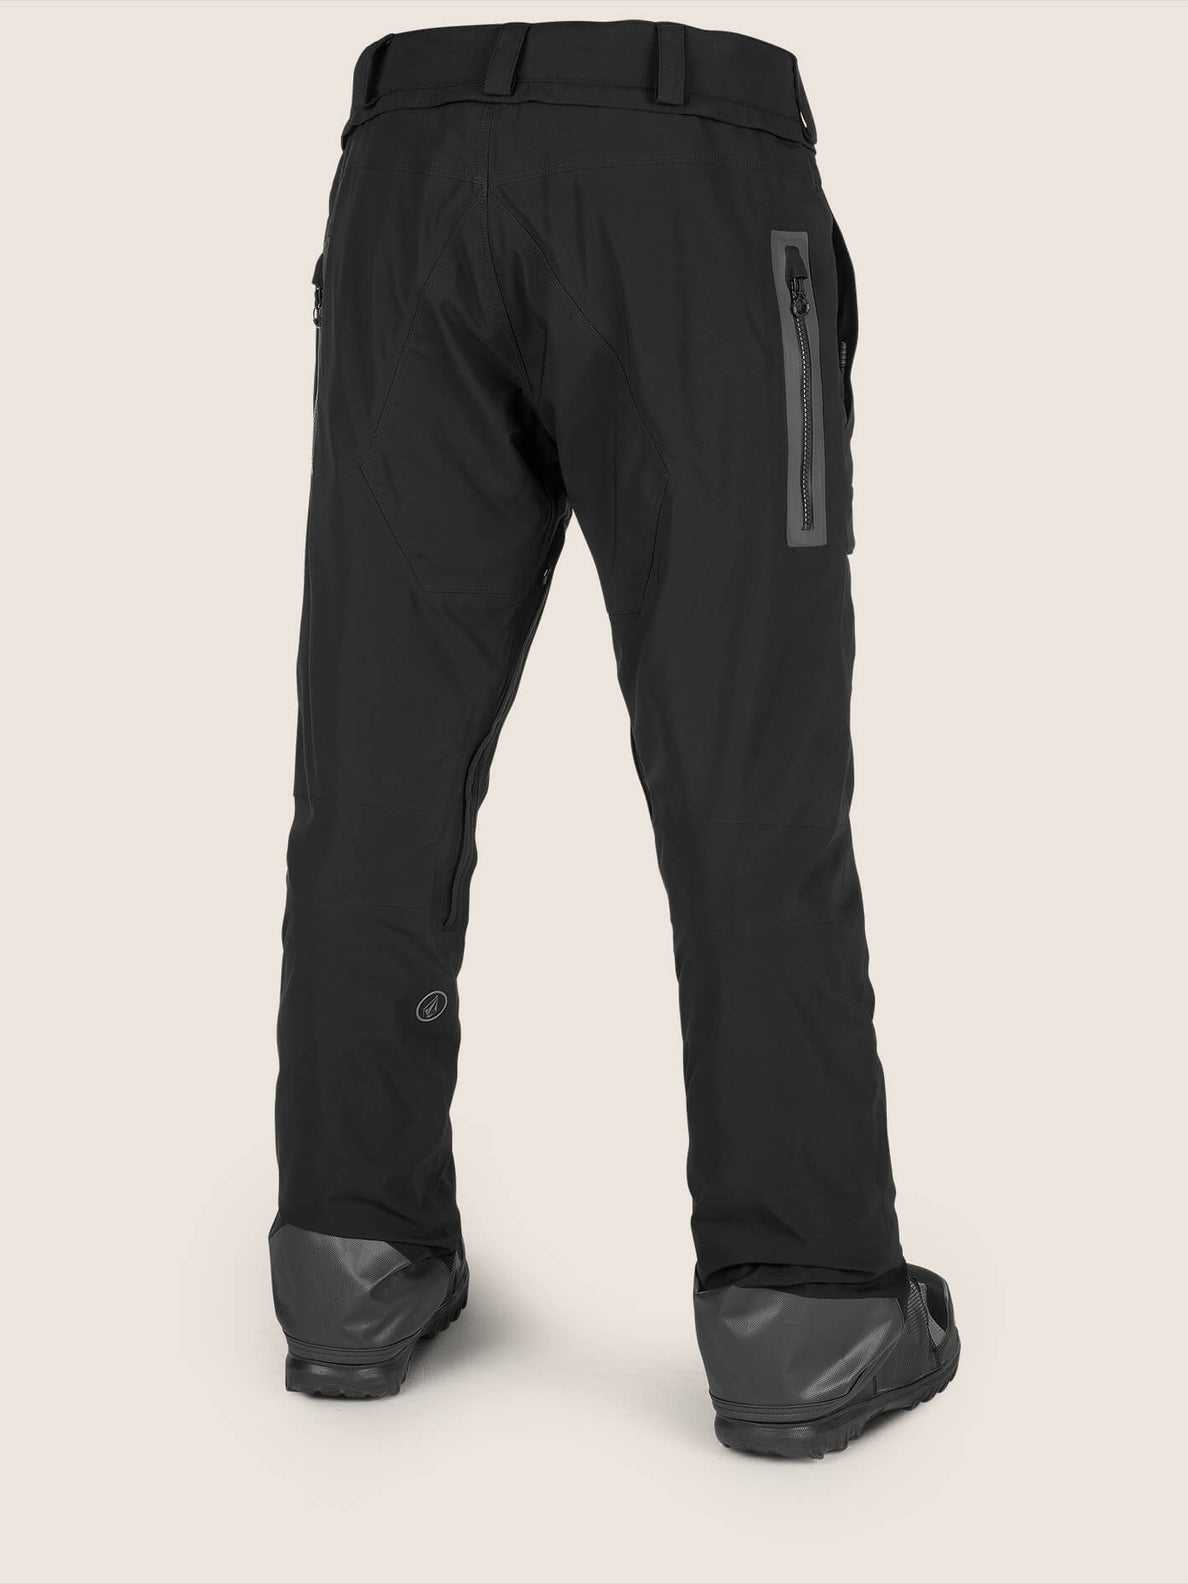 Stretch Gore-tex Pant In Black, Back View